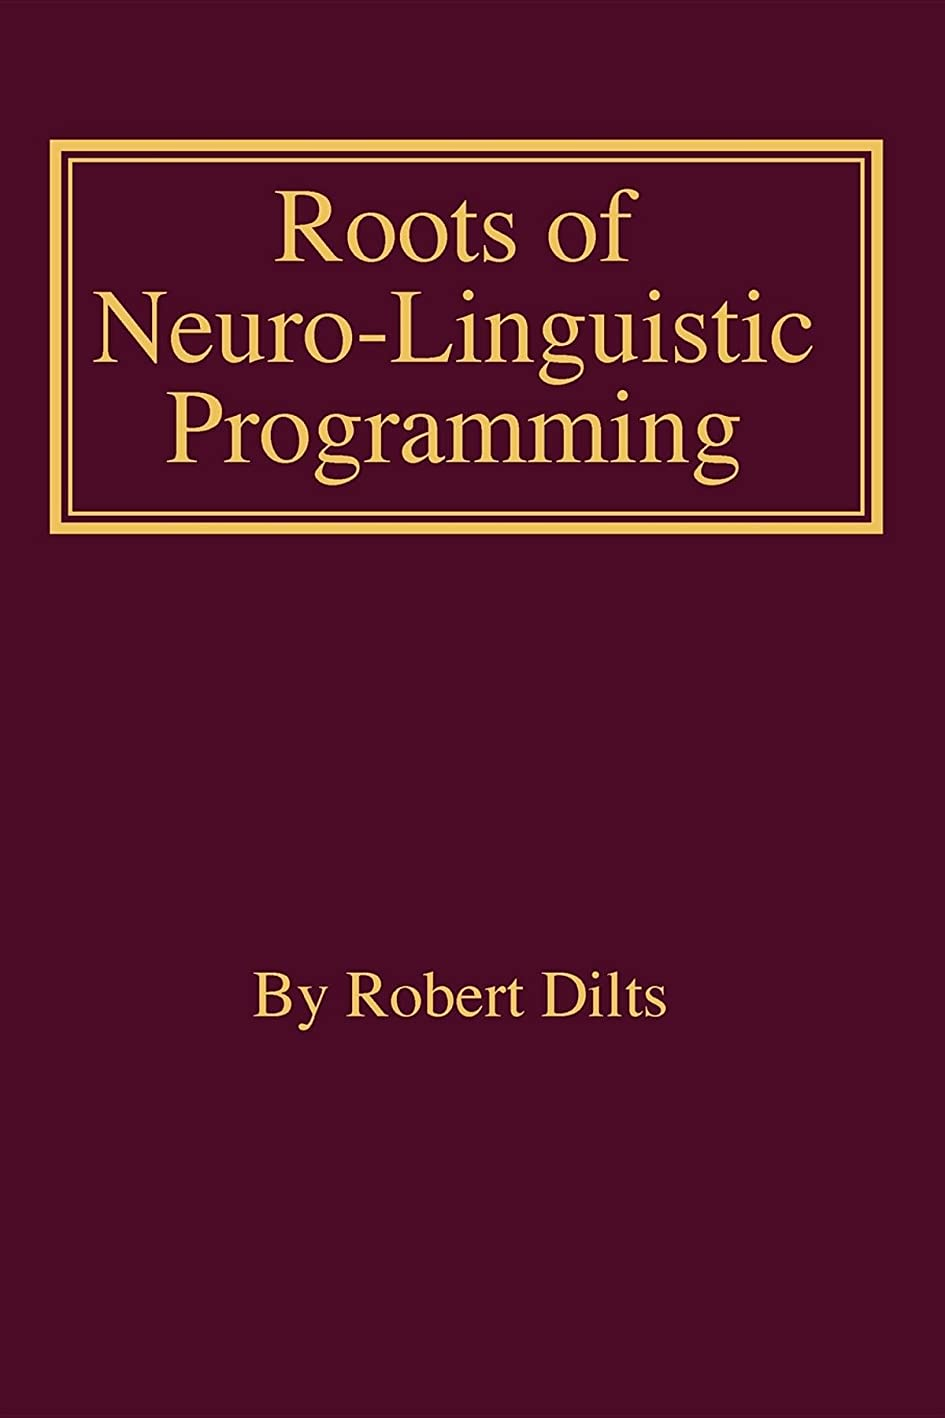 モチーフ希少性不快なRoots of Neuro-Linguistic Programming (English Edition)